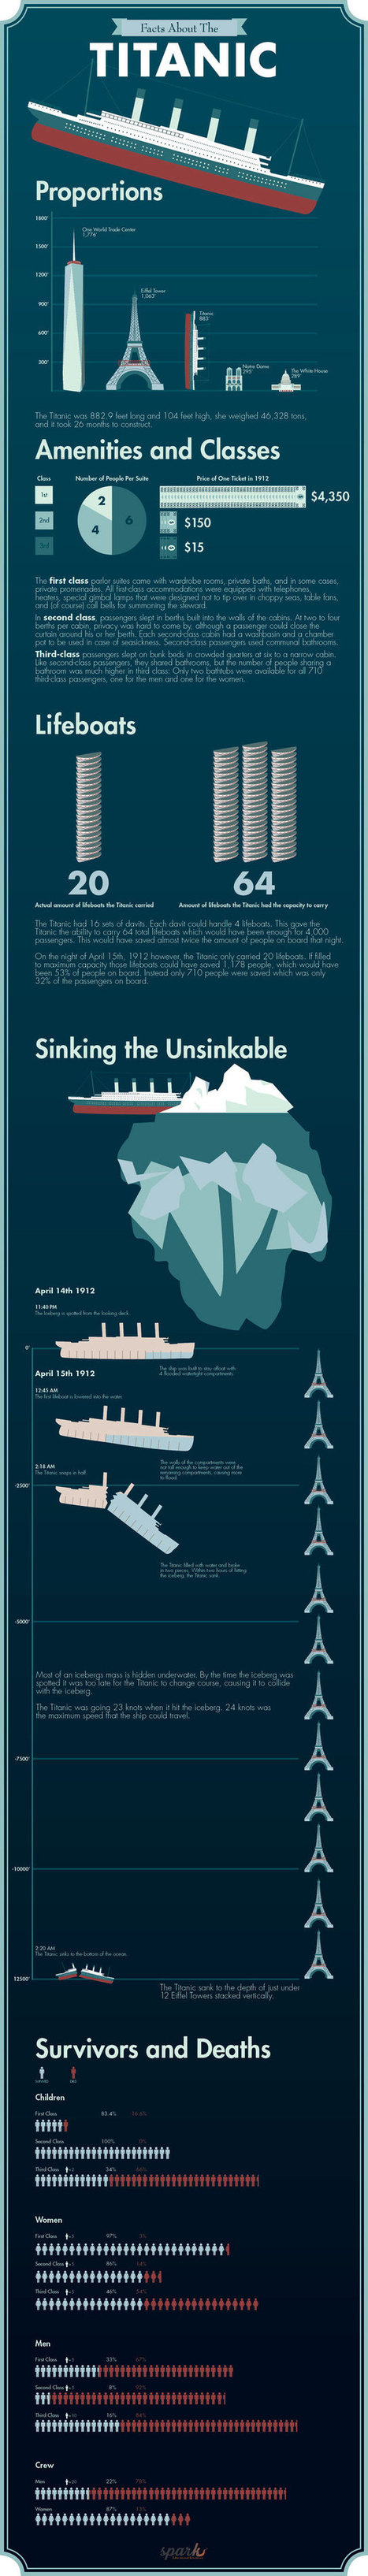 Titanic Facts About the Unsinkable Titanic (Infographic) | The Best Infographics | Scoop.it